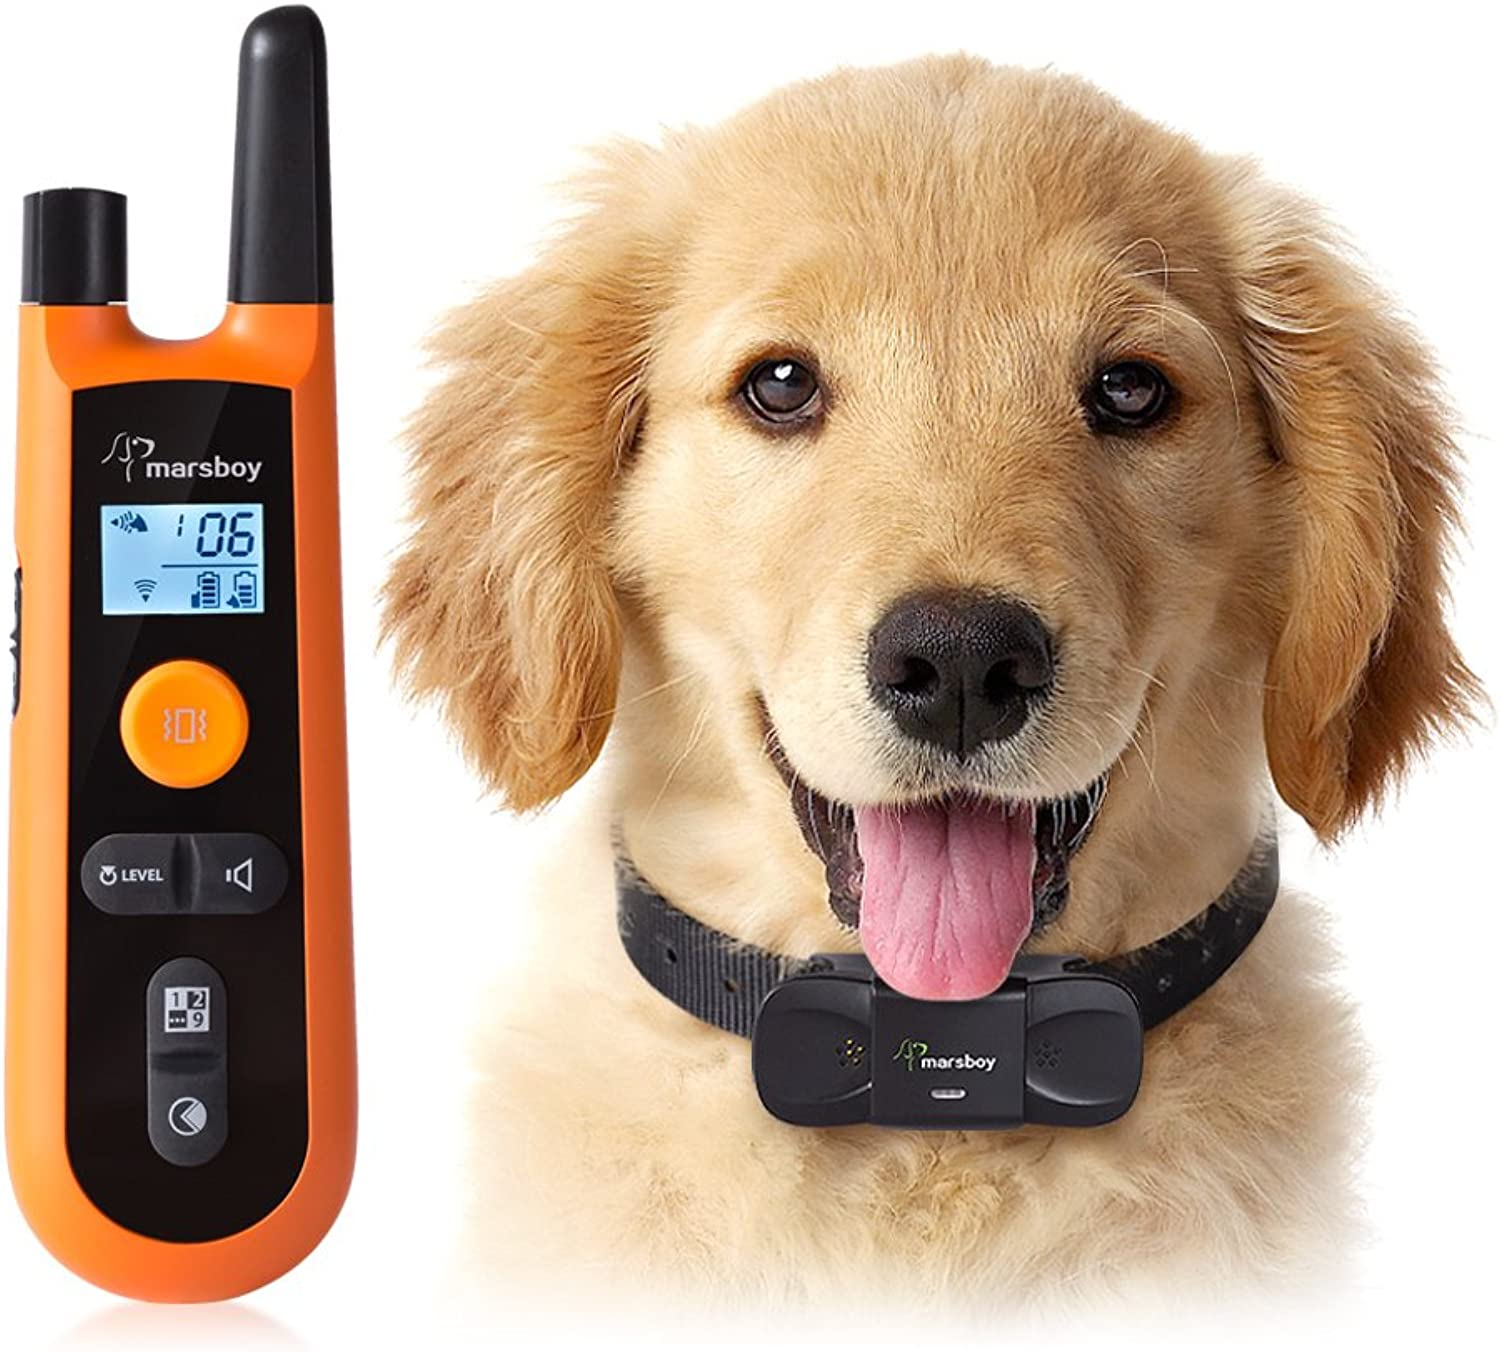 Marsboy Dog Training Collar, Rechargeable and Waterproof Dog Trainer with Beep, Adjustable Vibration Function, 200 Meters Training Range, Longlasting Battery Life, Humane Training Collar Dogs